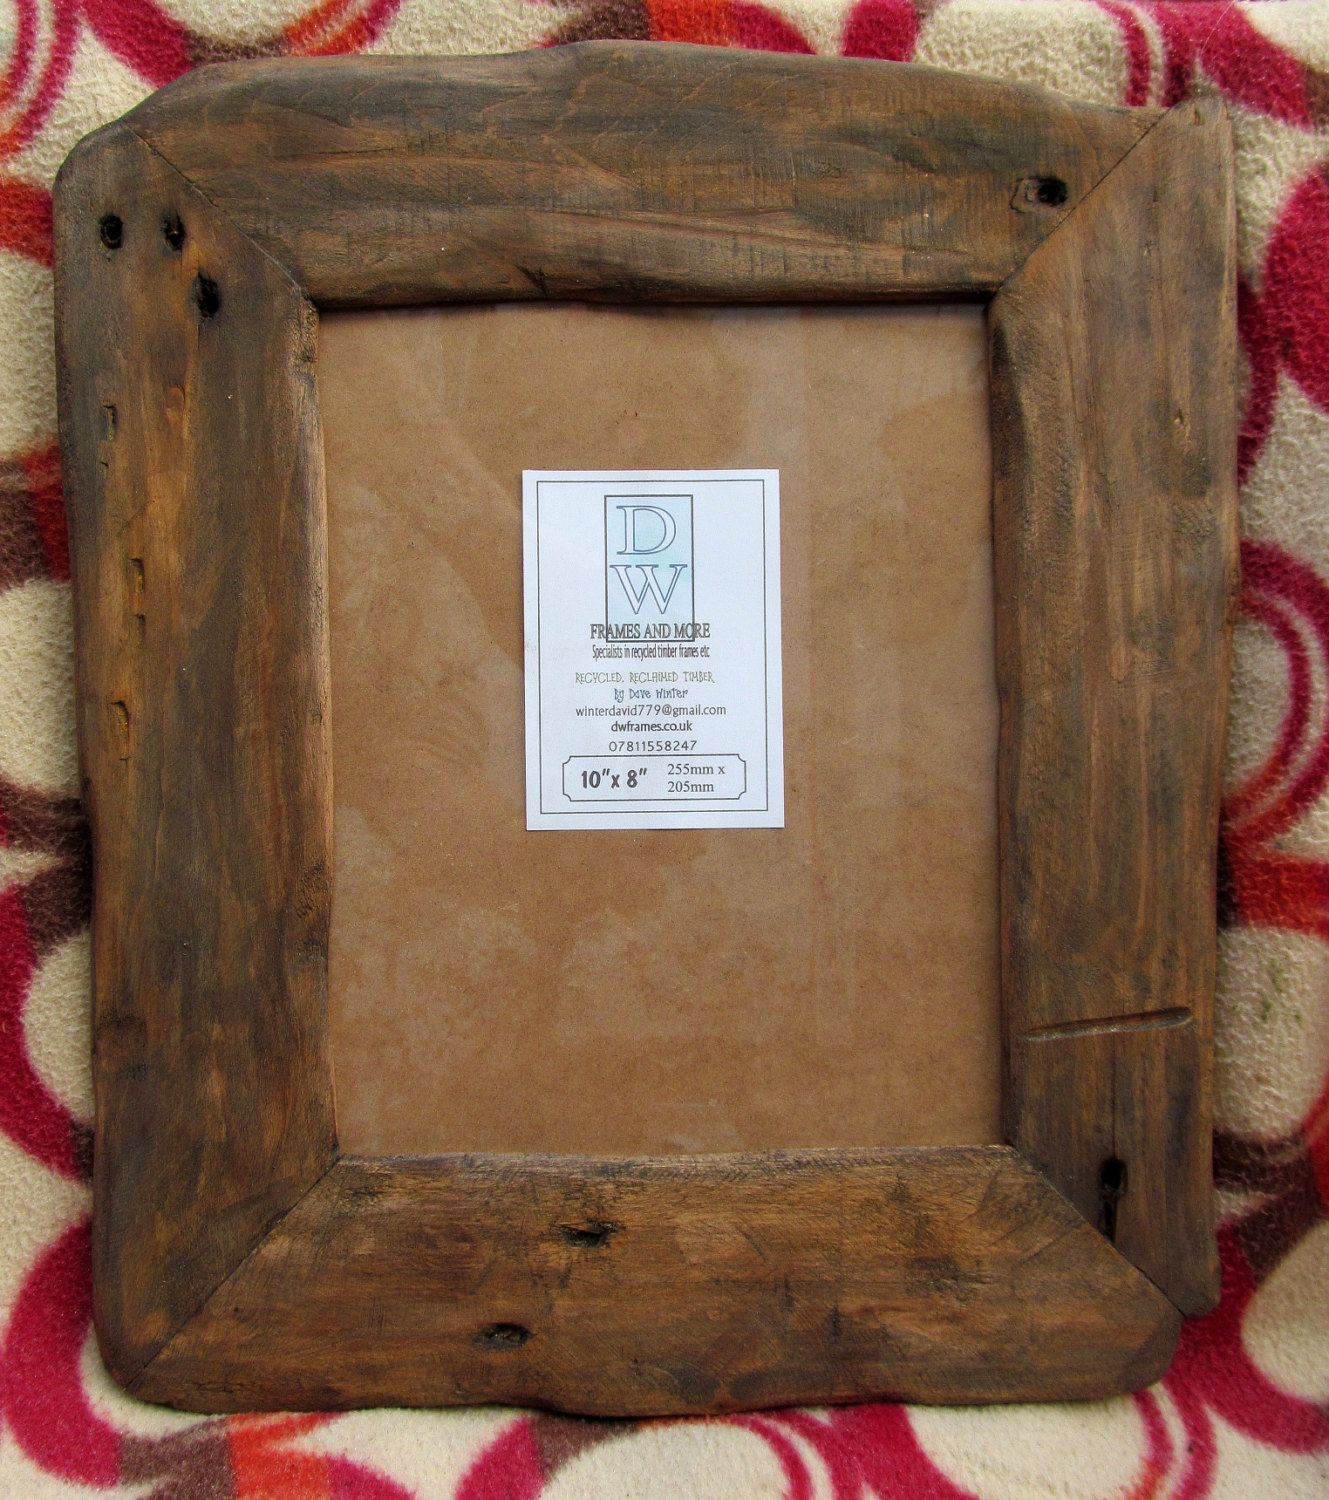 Rusticdriftwood Style Frame In Locally Sourced,Recycled Hardwood In Dark Oak